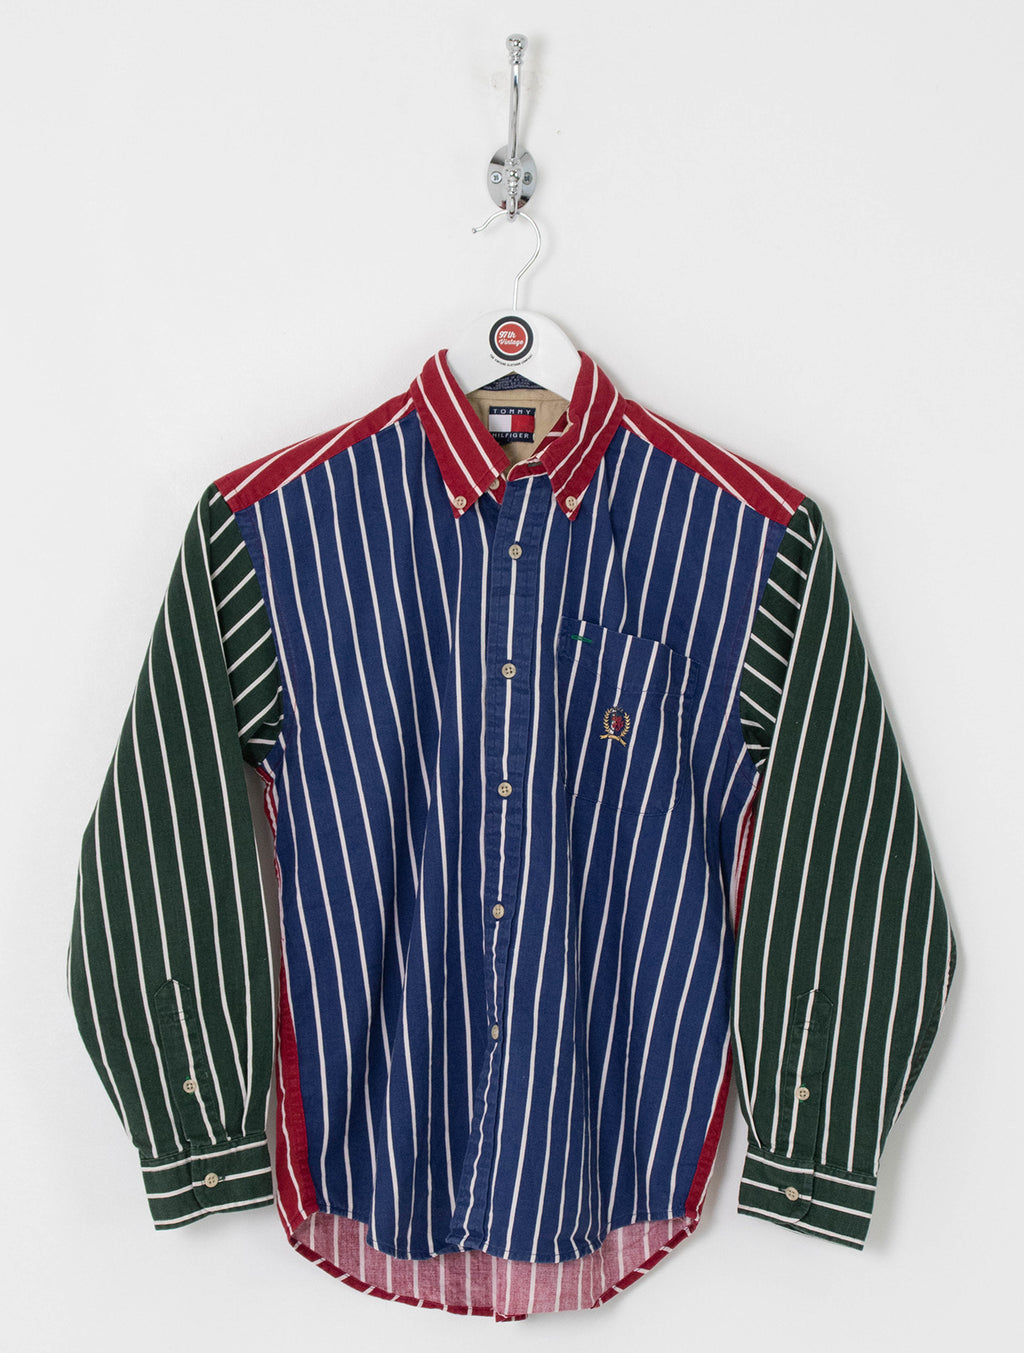 Kids Tommy Hilfiger Shirt (M)